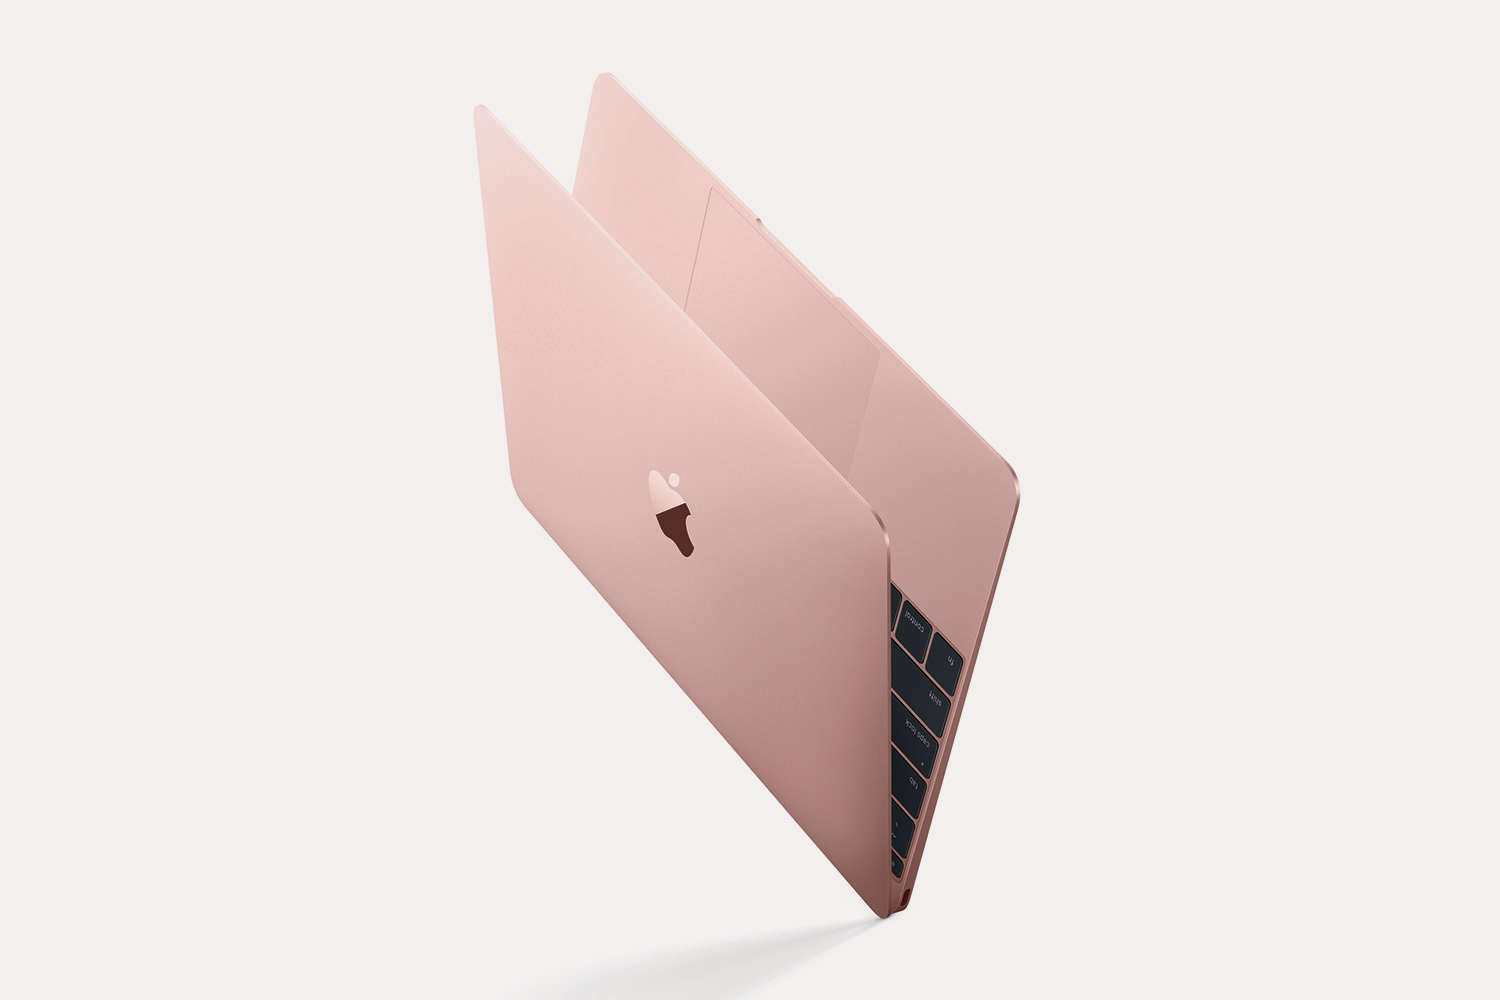 apple 39 s macbook is now faster and comes in rose gold hypebeast. Black Bedroom Furniture Sets. Home Design Ideas